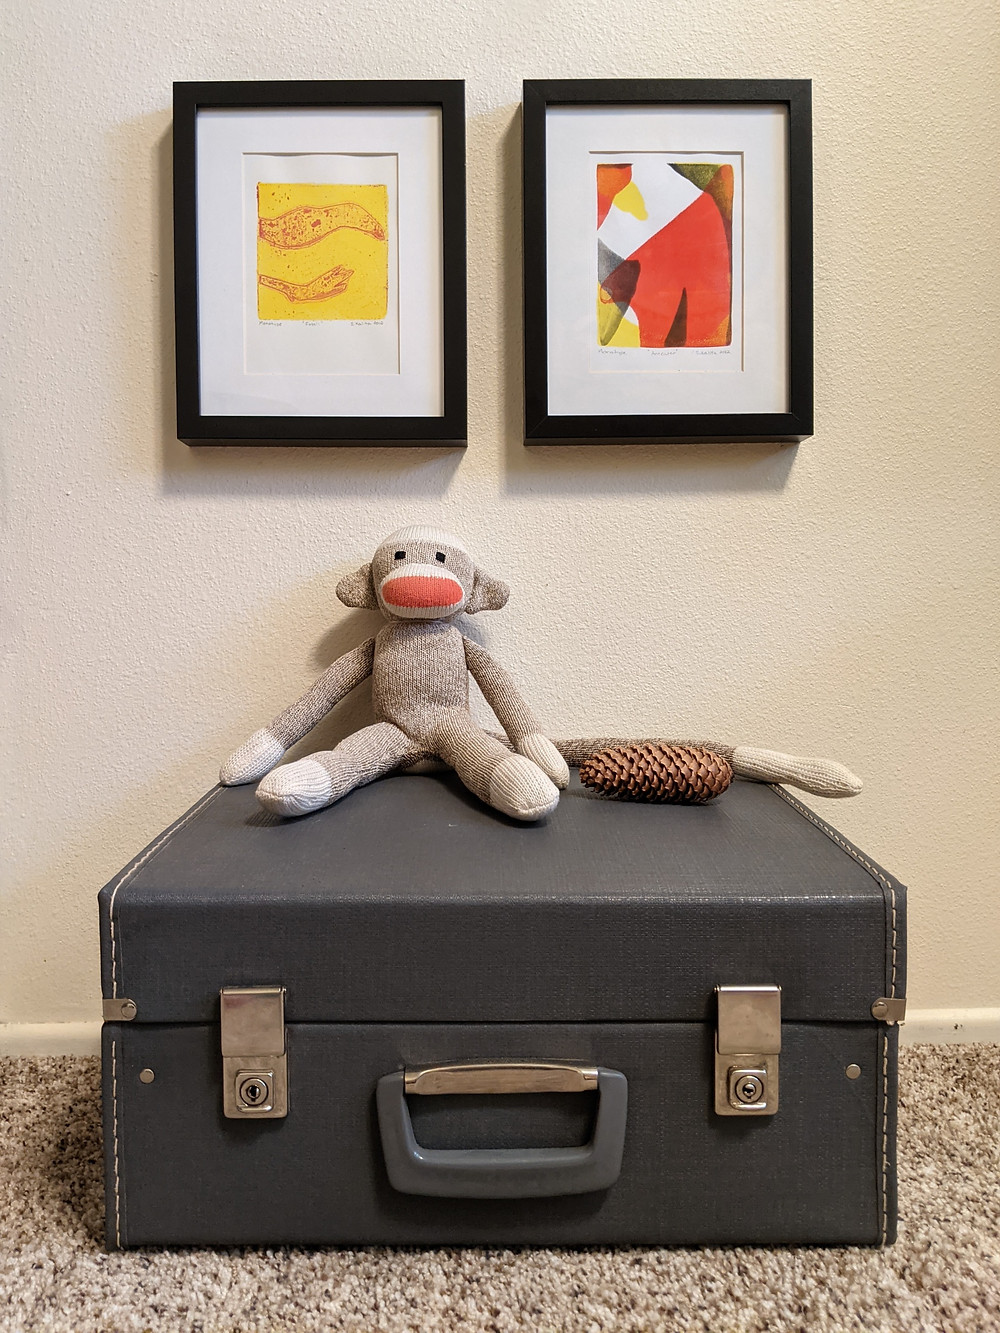 WxH shows how art can be hung at kids eye level with two prints and a monkey toy on a suitcase